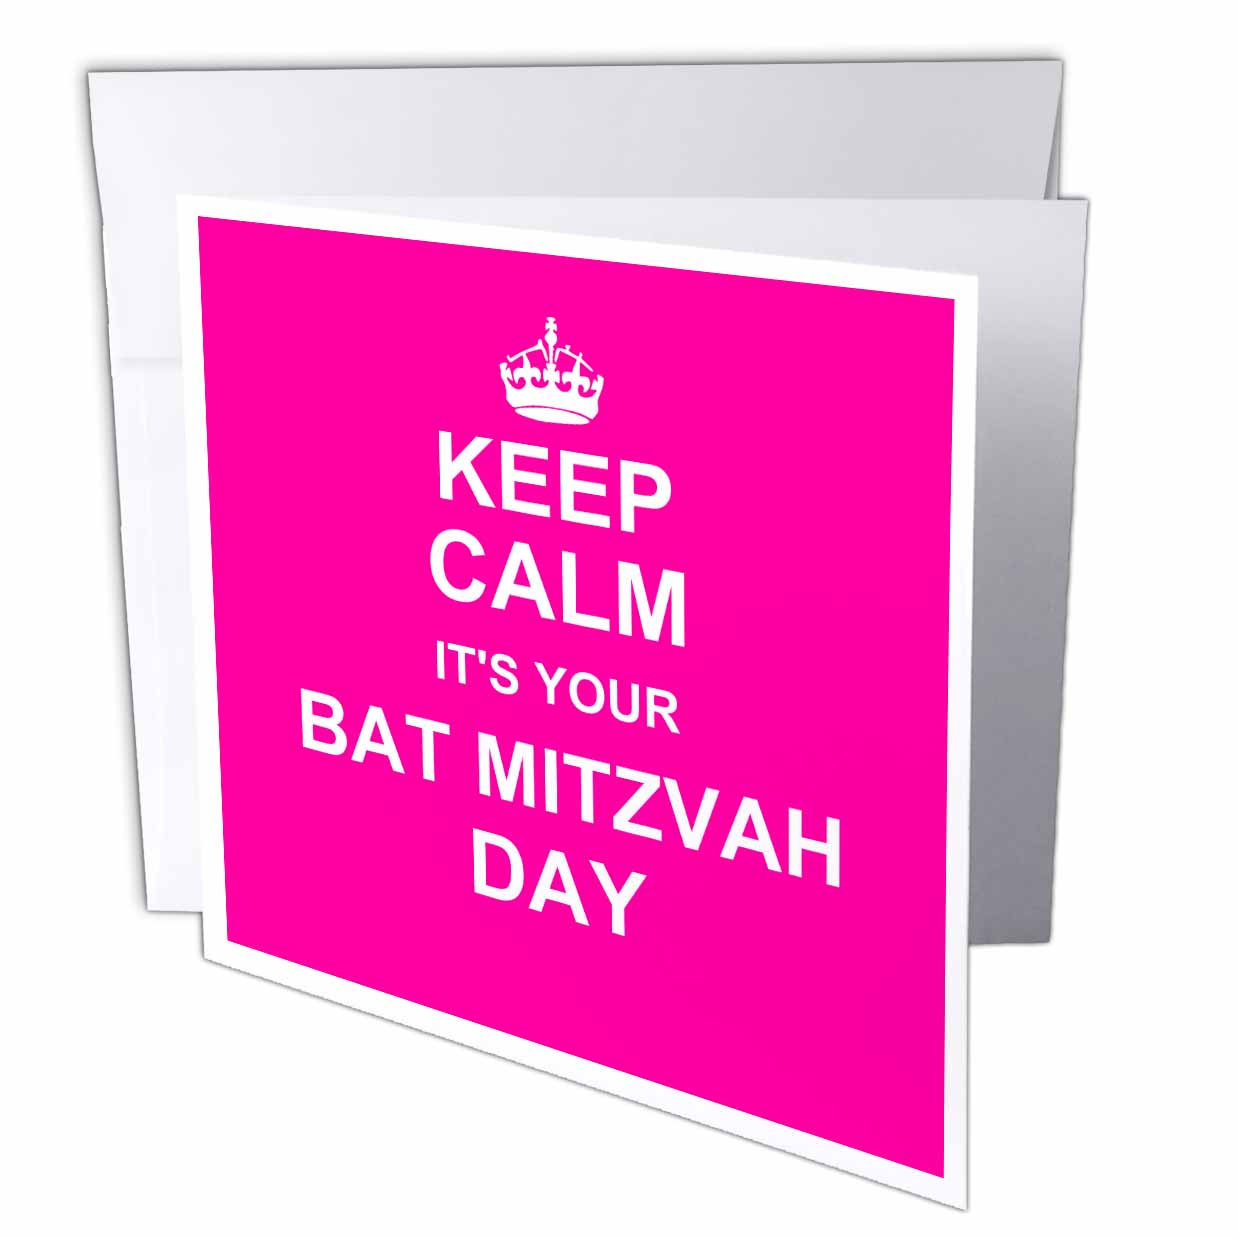 3dRose Keep Calm its your Bat Mitzvah day - hot pink text - Jewish Girls 12th birthday encouragement, Greeting Cards, 6 x 6 inches, set of 12